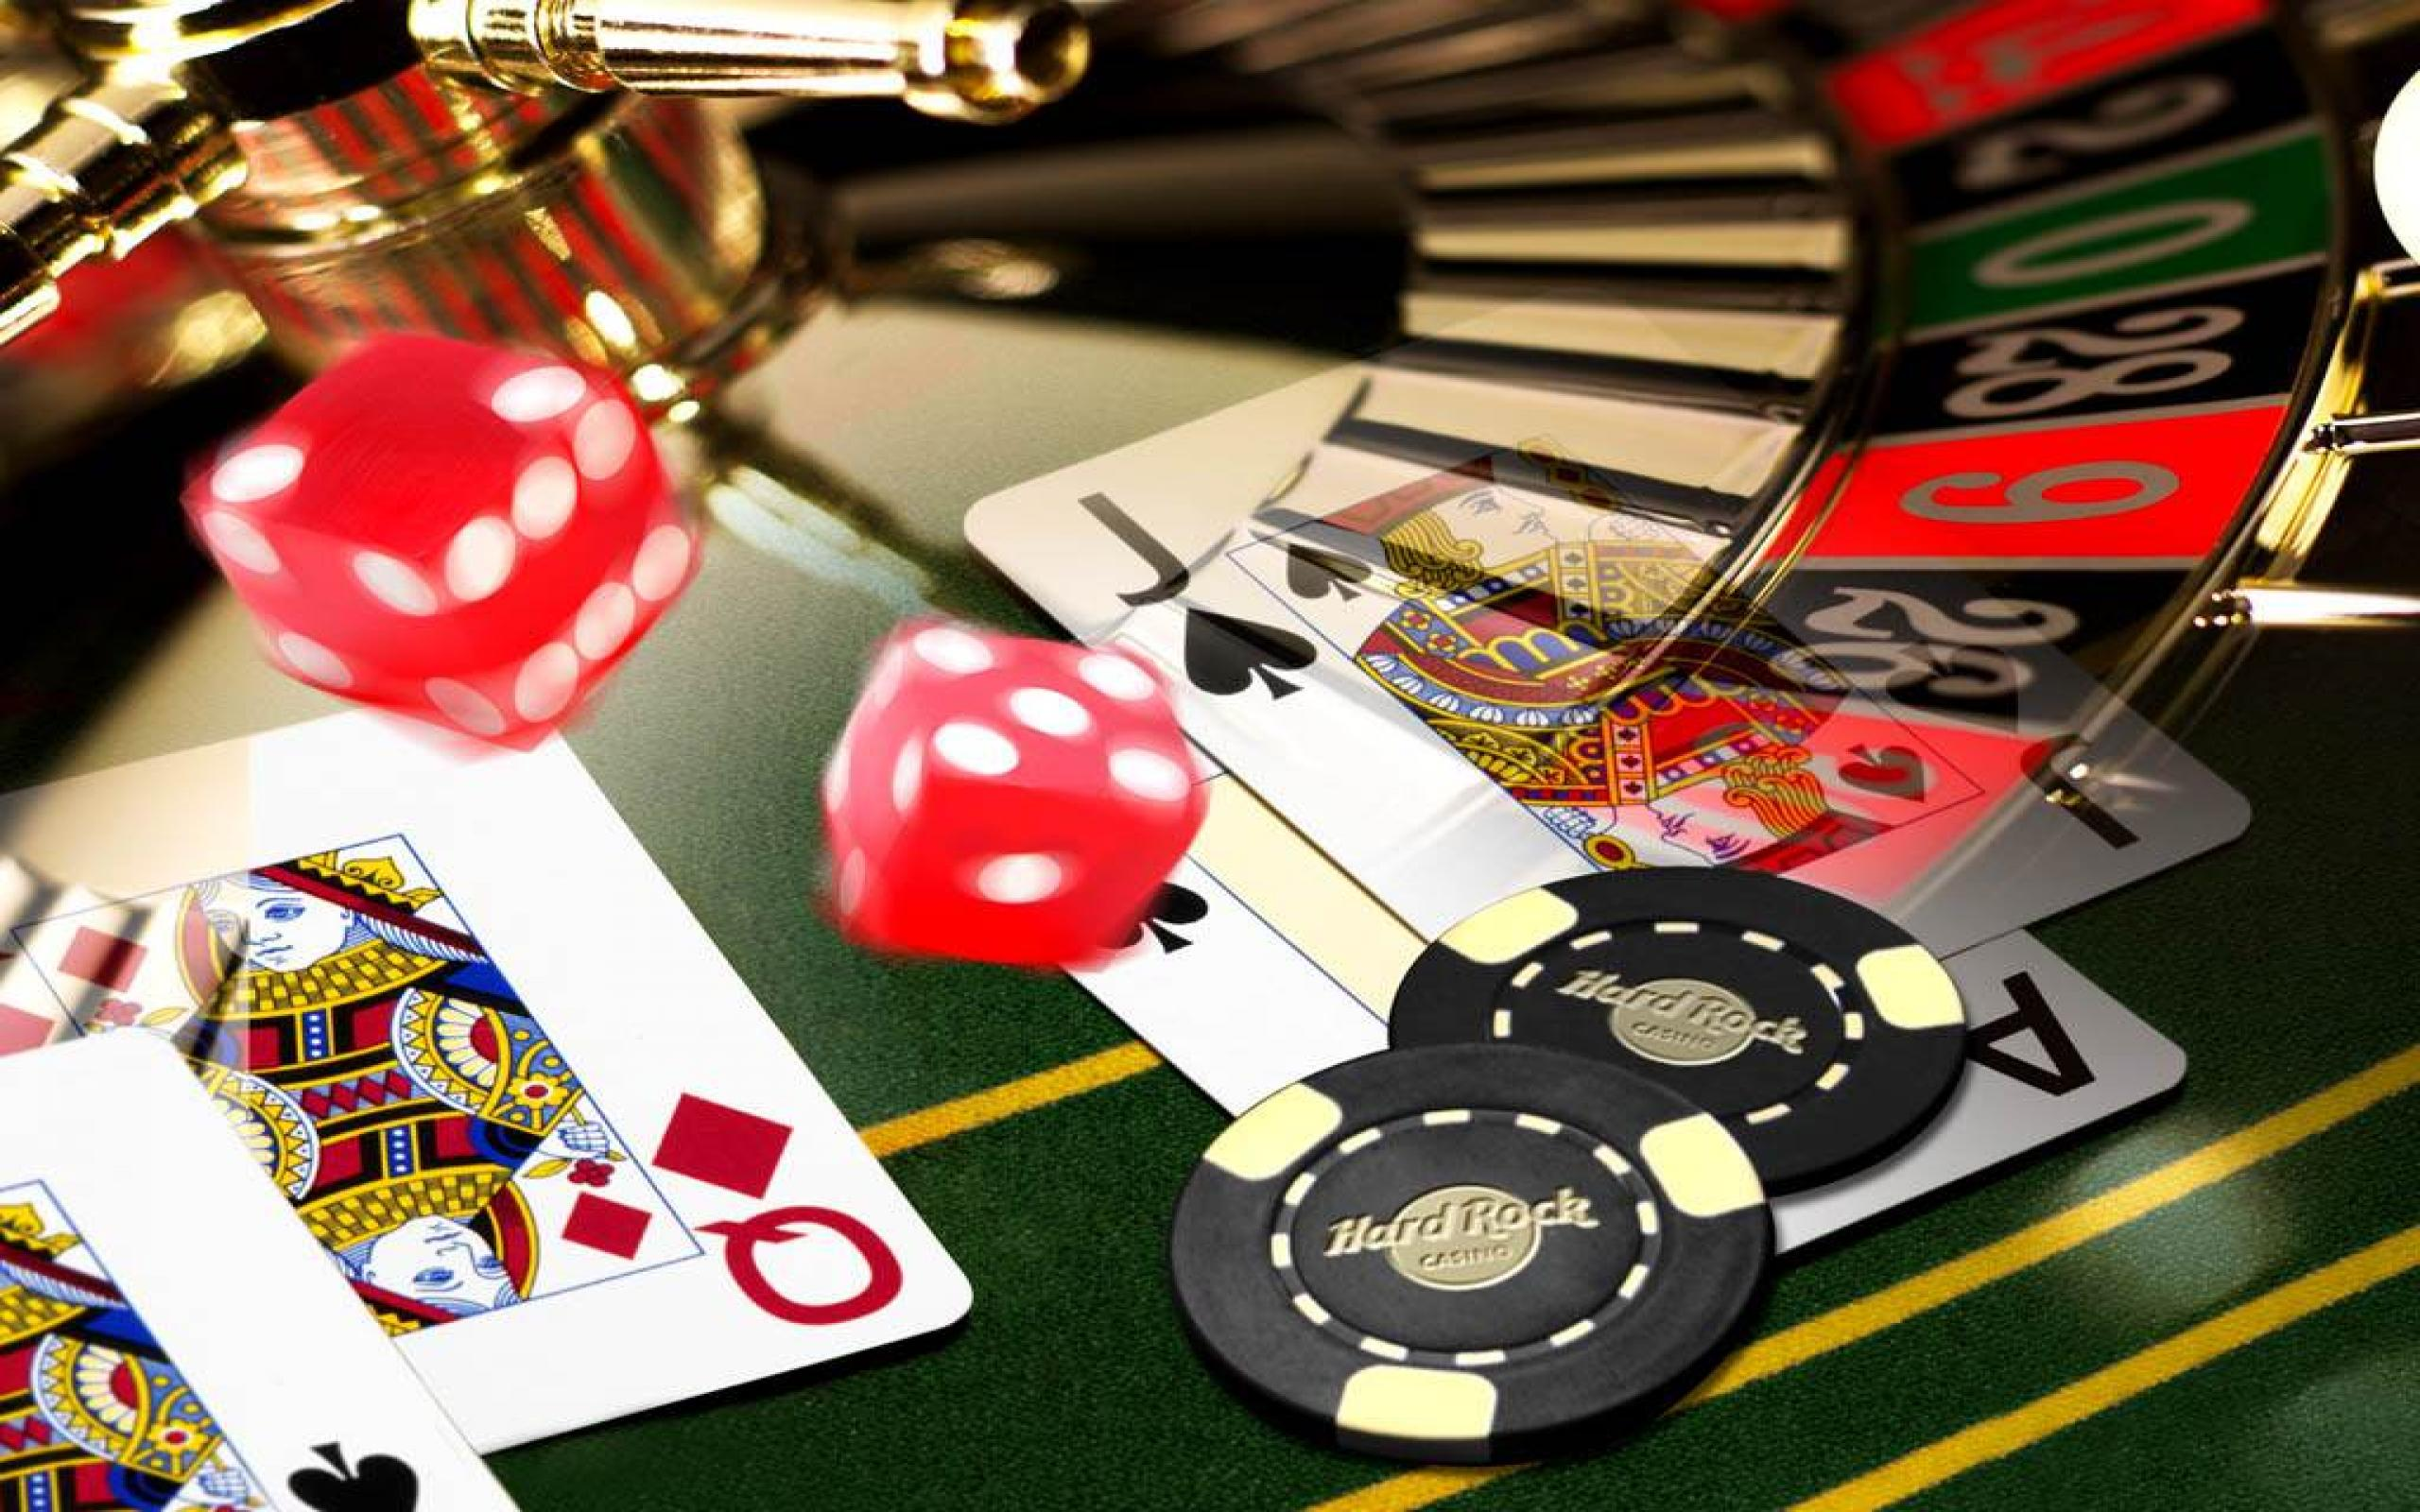 Recommend the Karamba casino to your friends and family